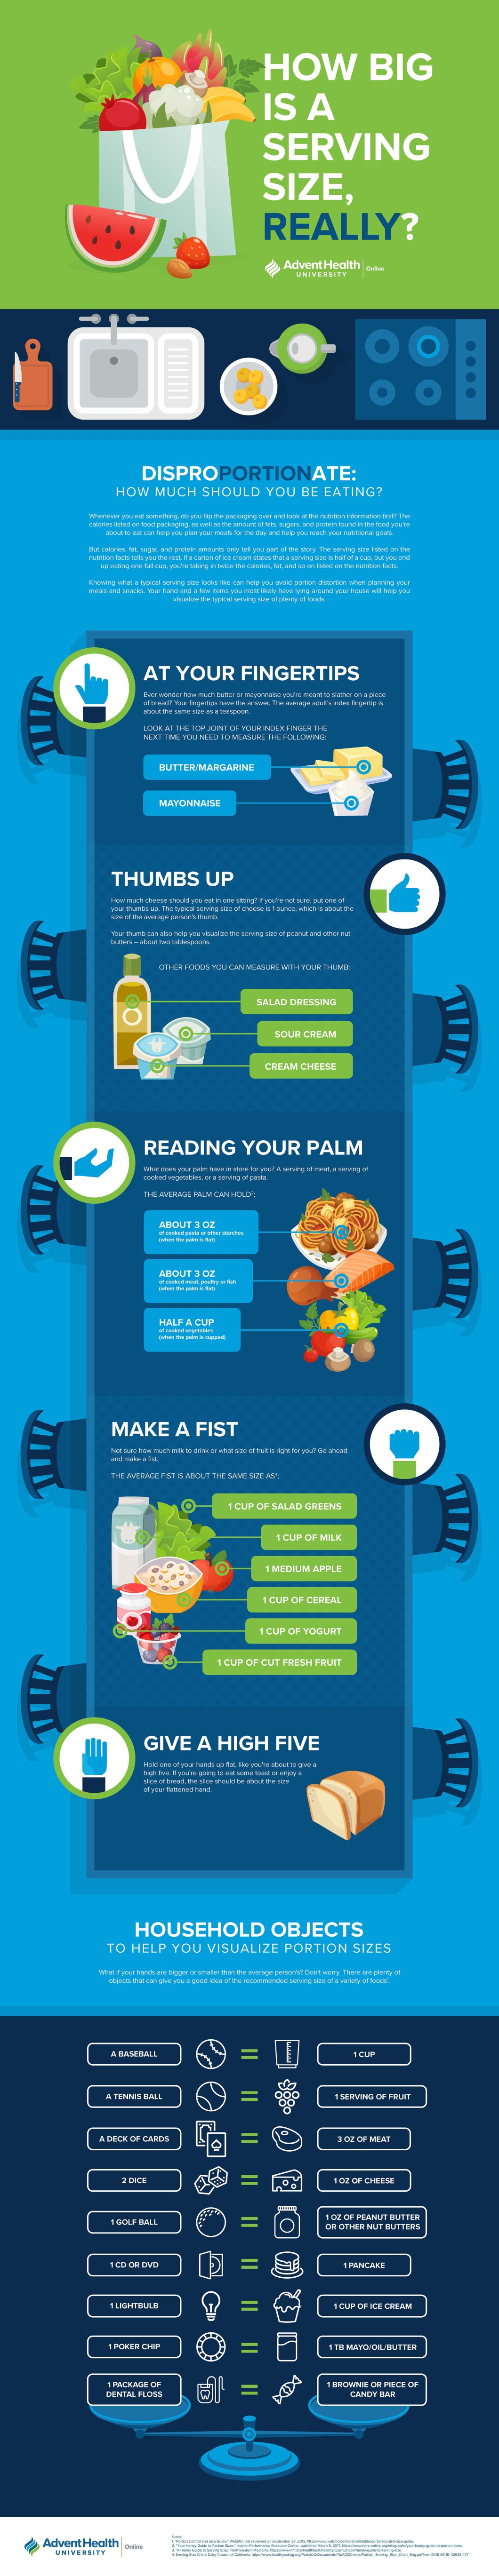 Food Serving Sizes in Fingers, Fists and Palms - Infographic